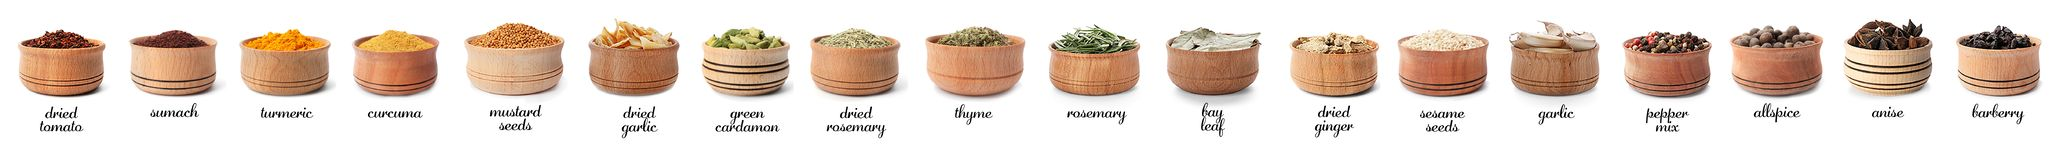 Free Wooden Bowls With Different Spices And Herbs On White Background. Stock Images - 133730654